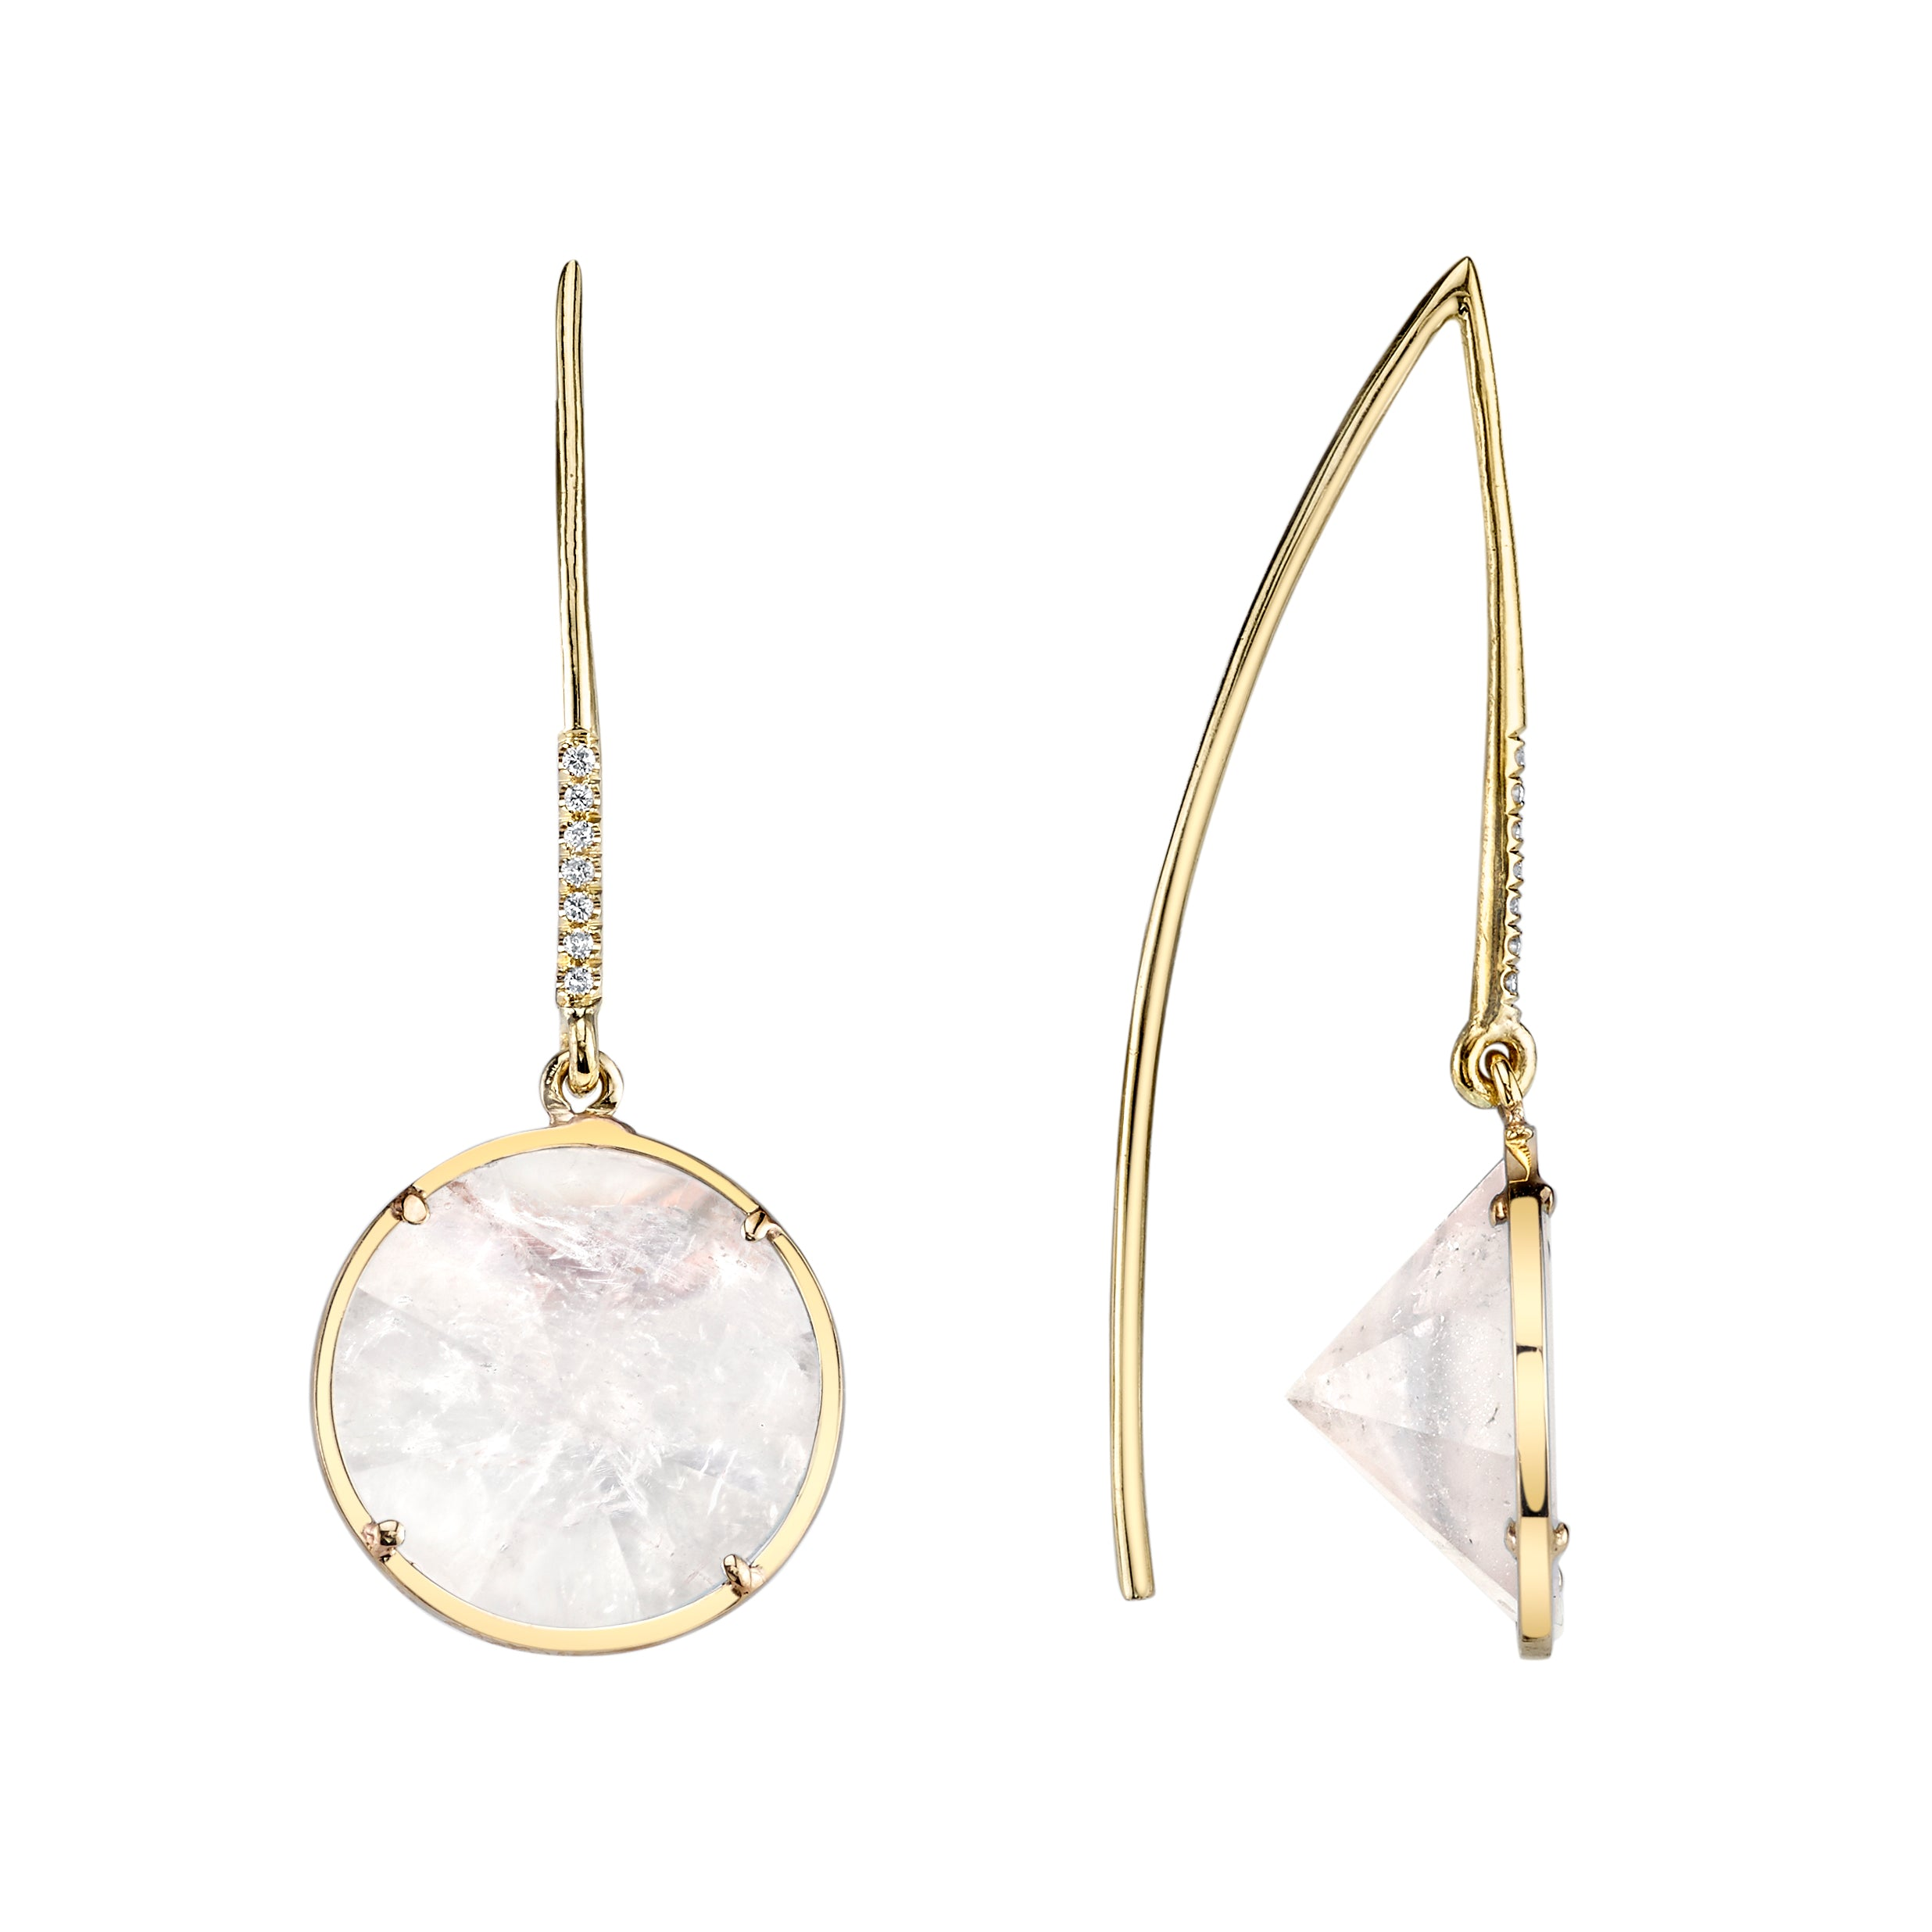 Round Mirror Cut Dangling Earrings